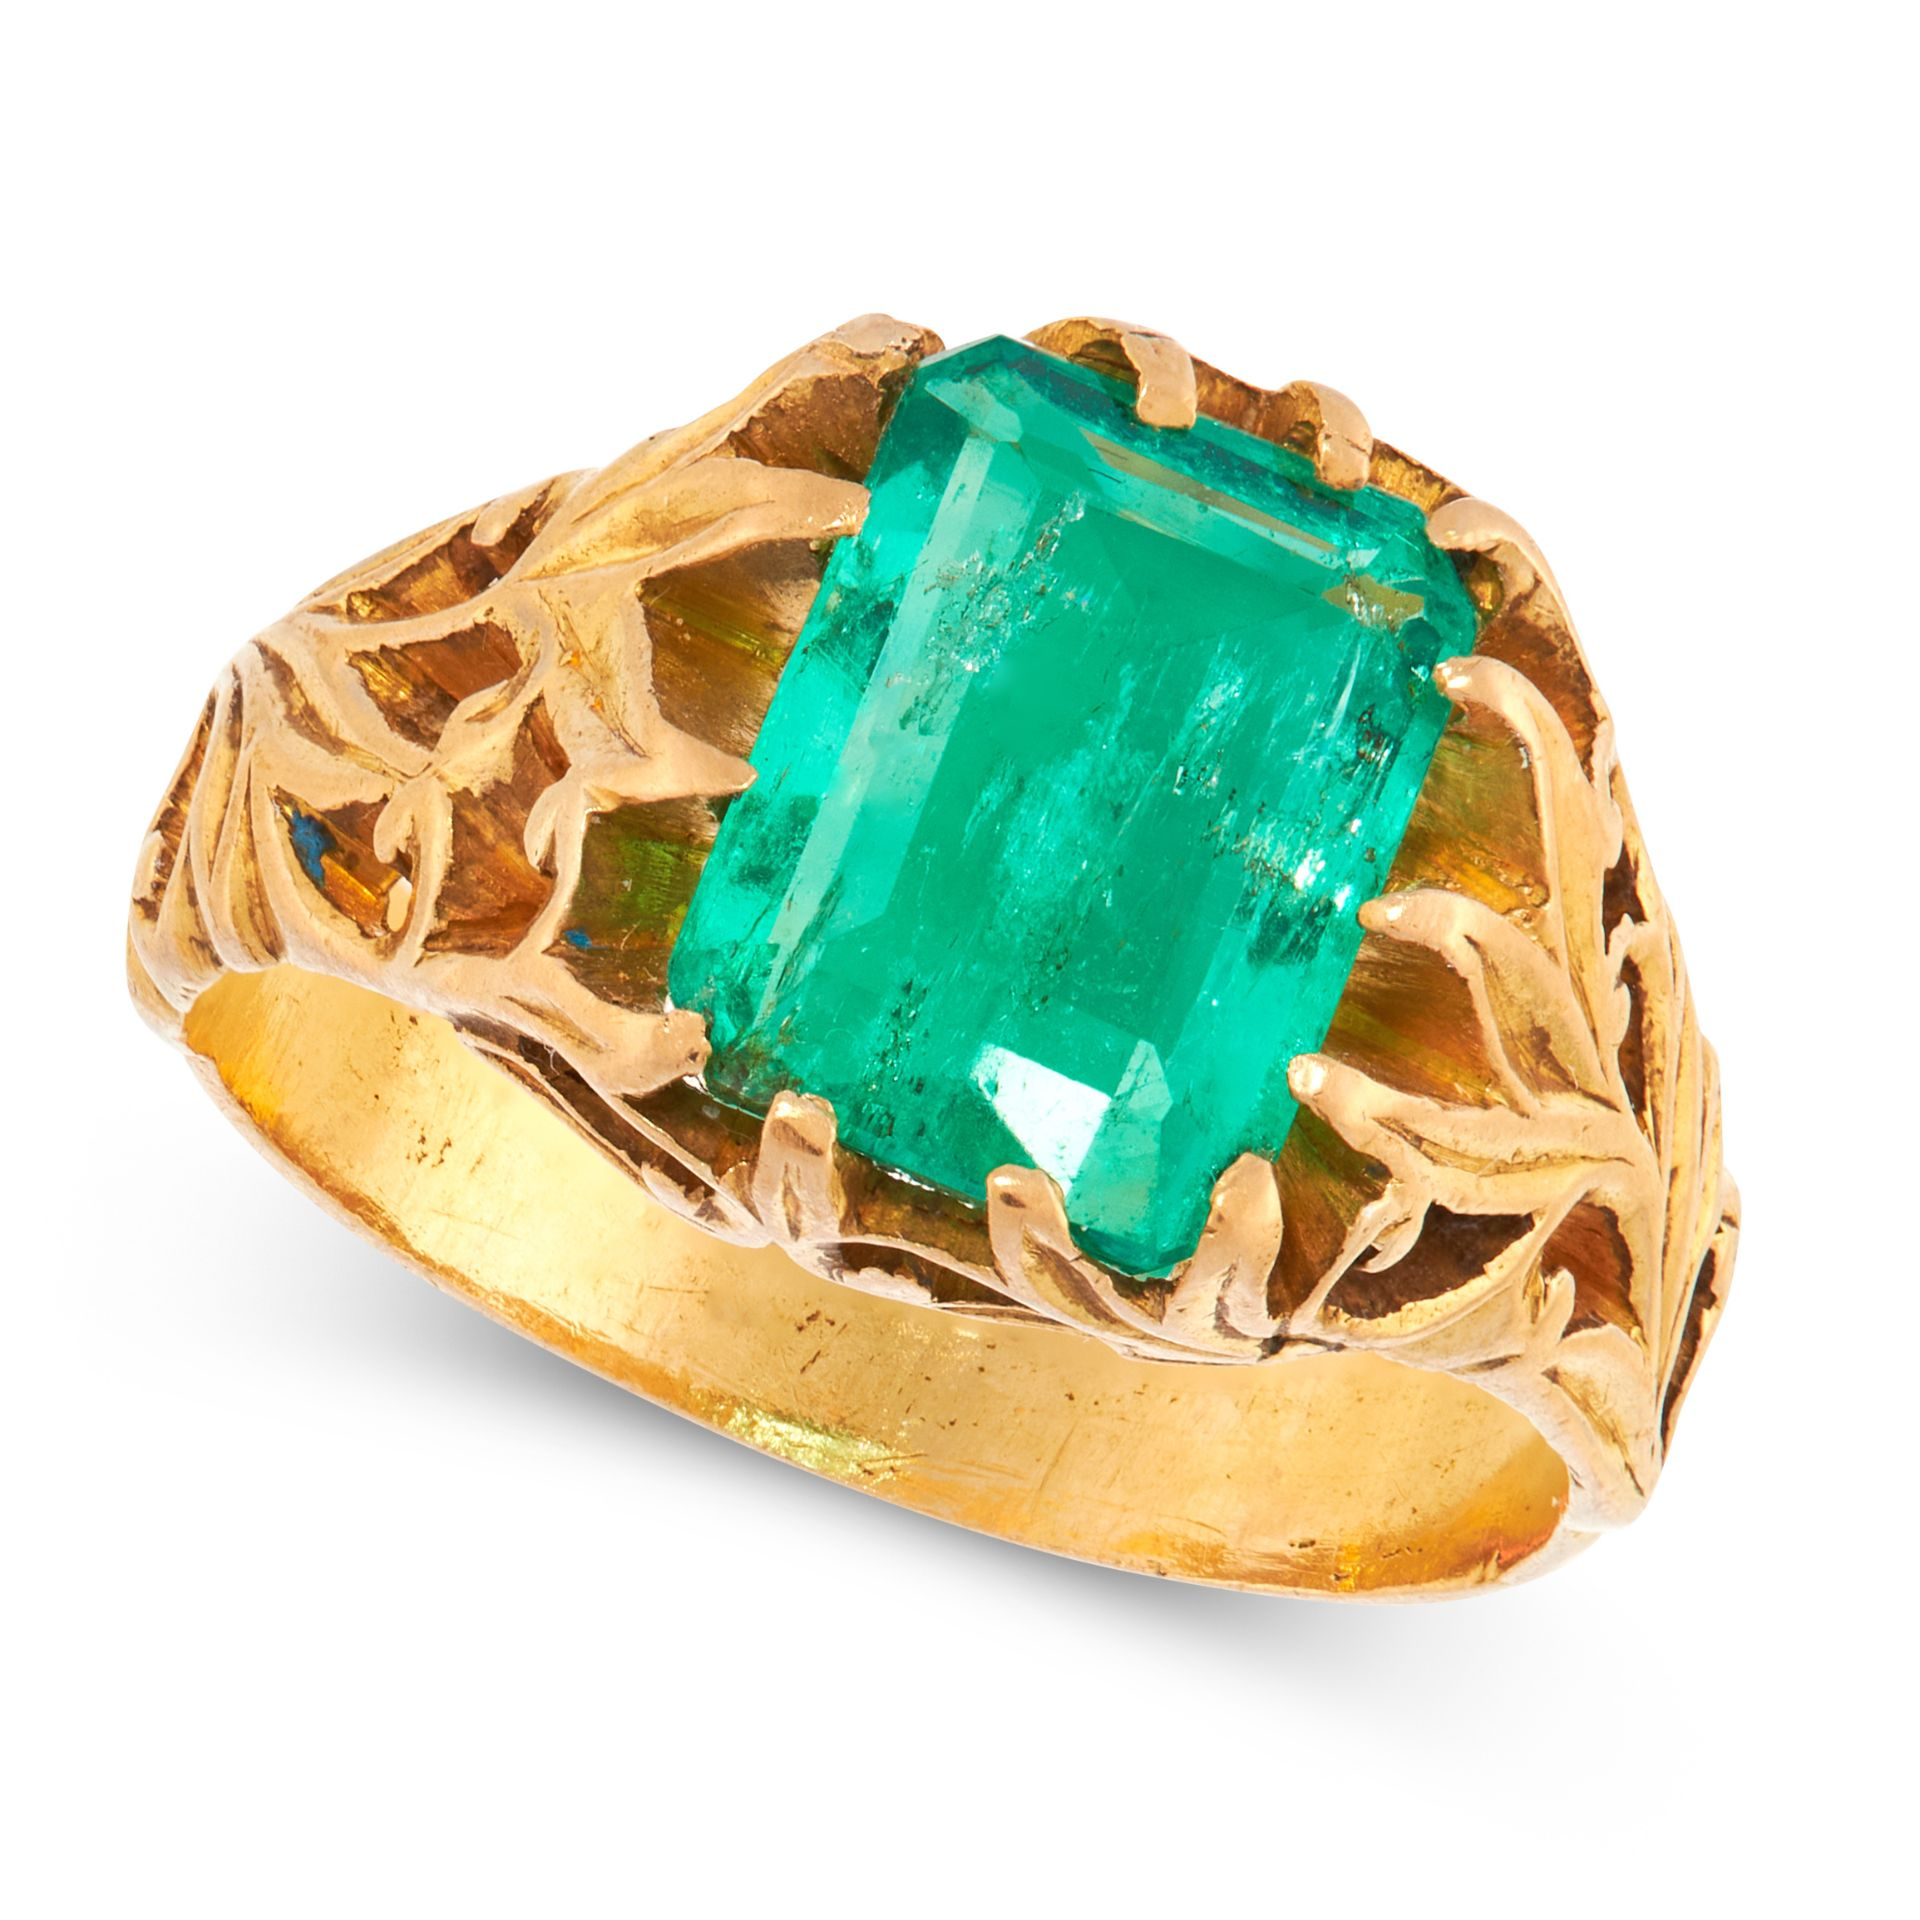 A COLOMBIAN EMERALD DRESS RING in high carat yellow gold, set with an emerald cut emerald of 2.85